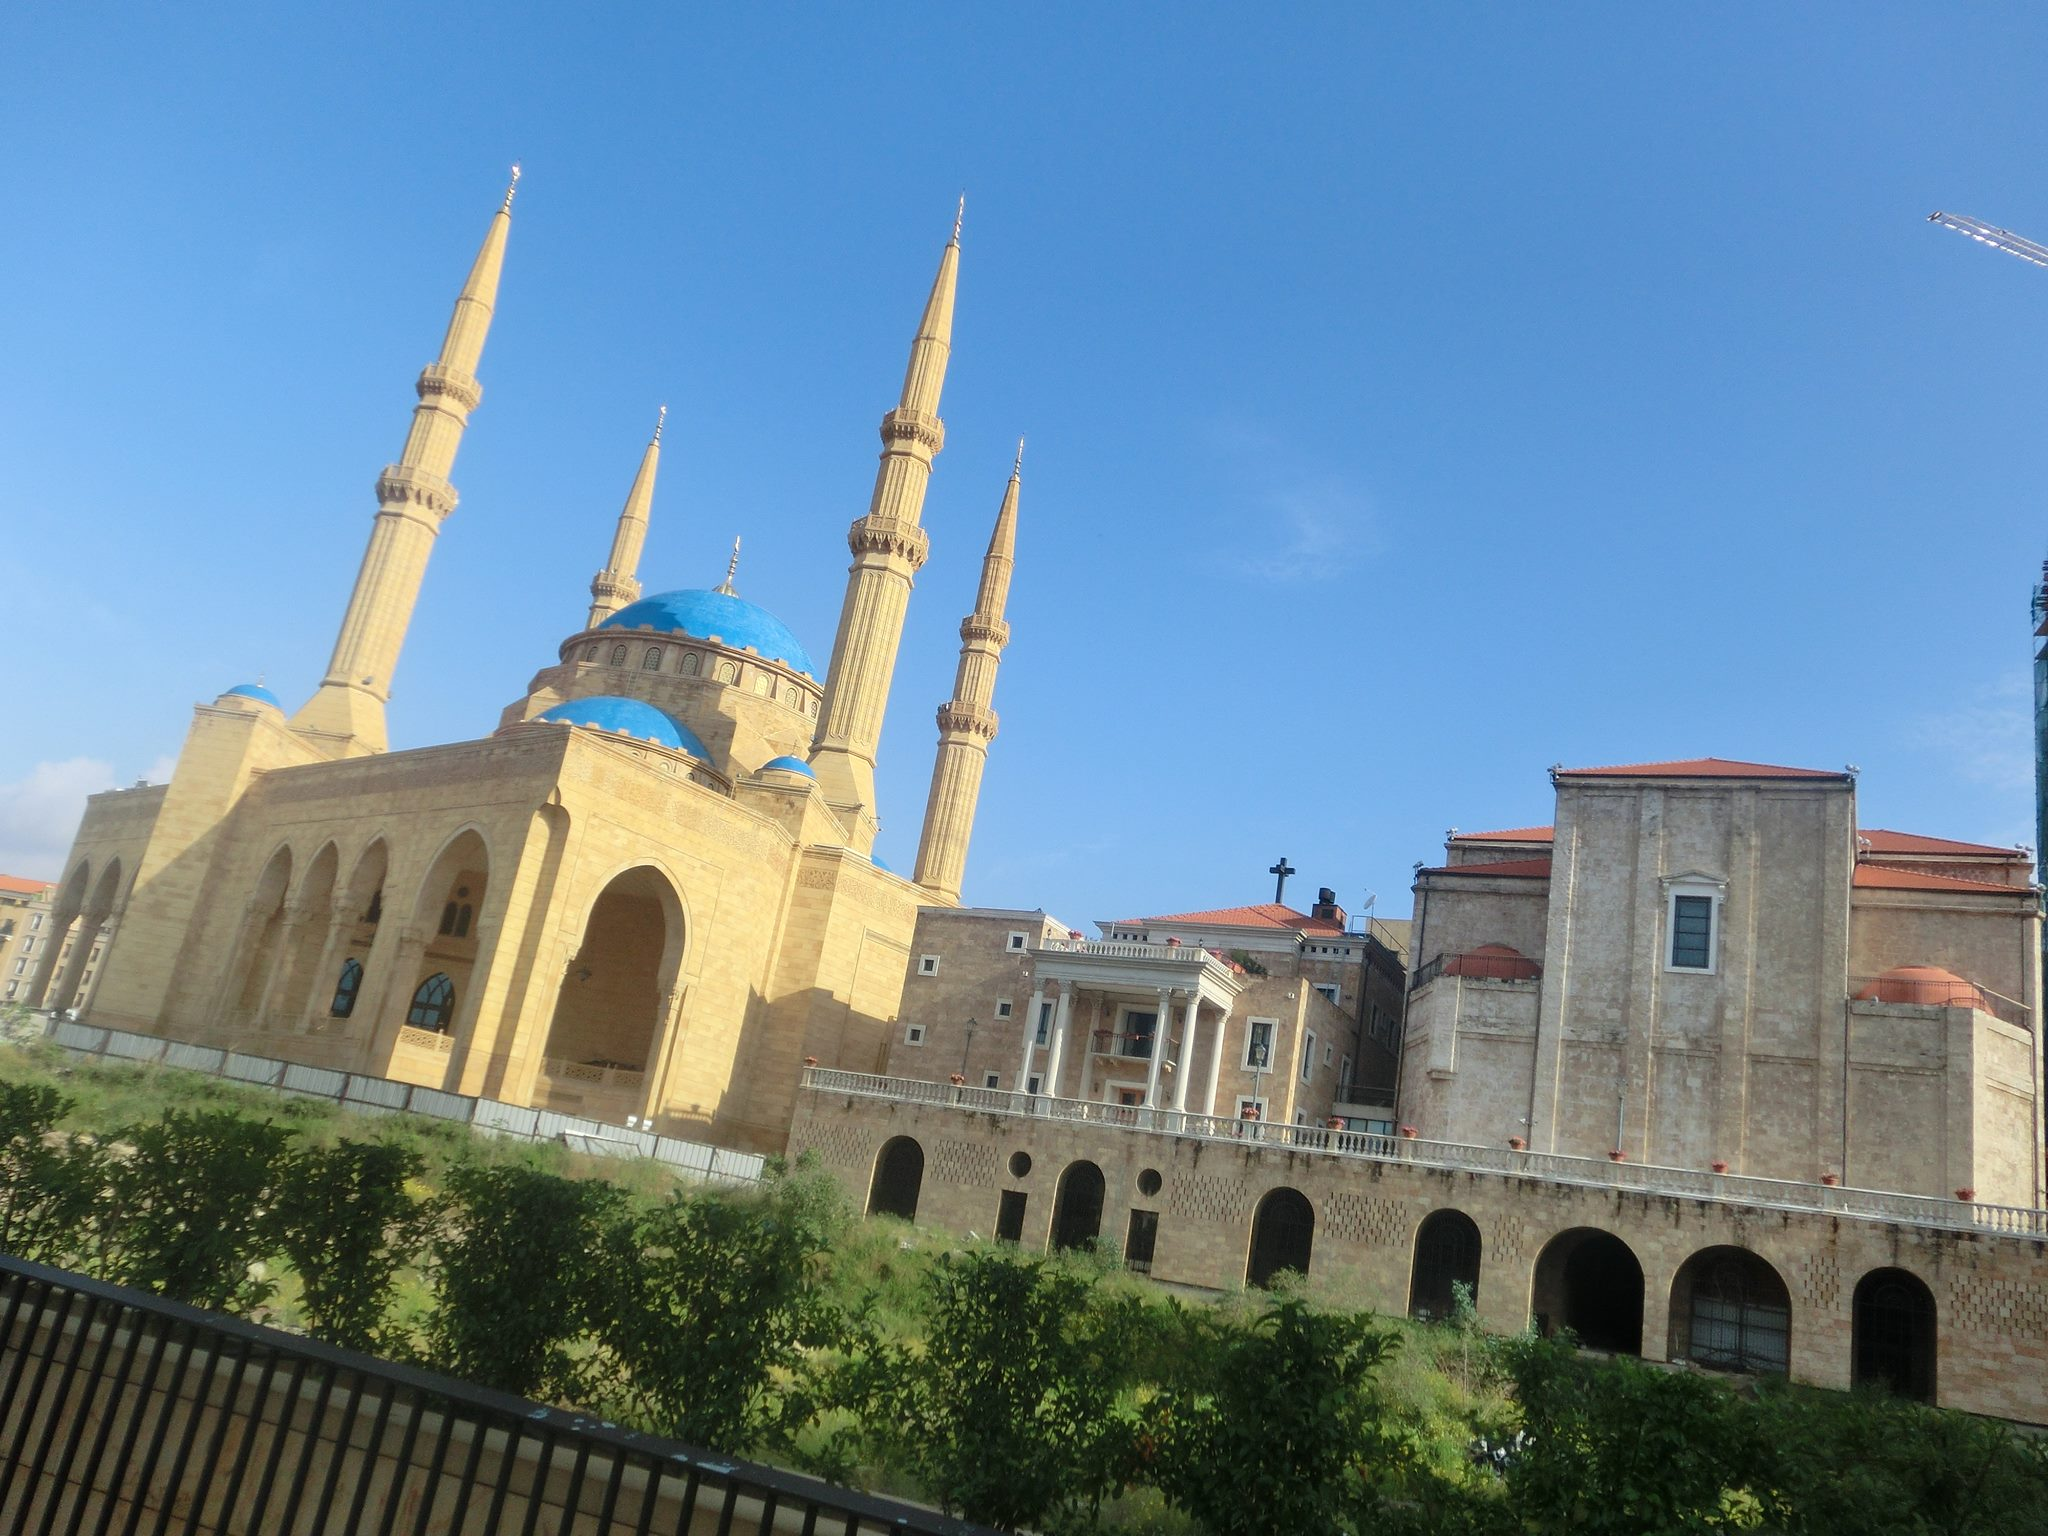 The Mohammad Al-Amin Mosque and the Saint George Maronite Cathedral stand side by side in Martyr's Square in downtown Beirut. (Kevin Lees)